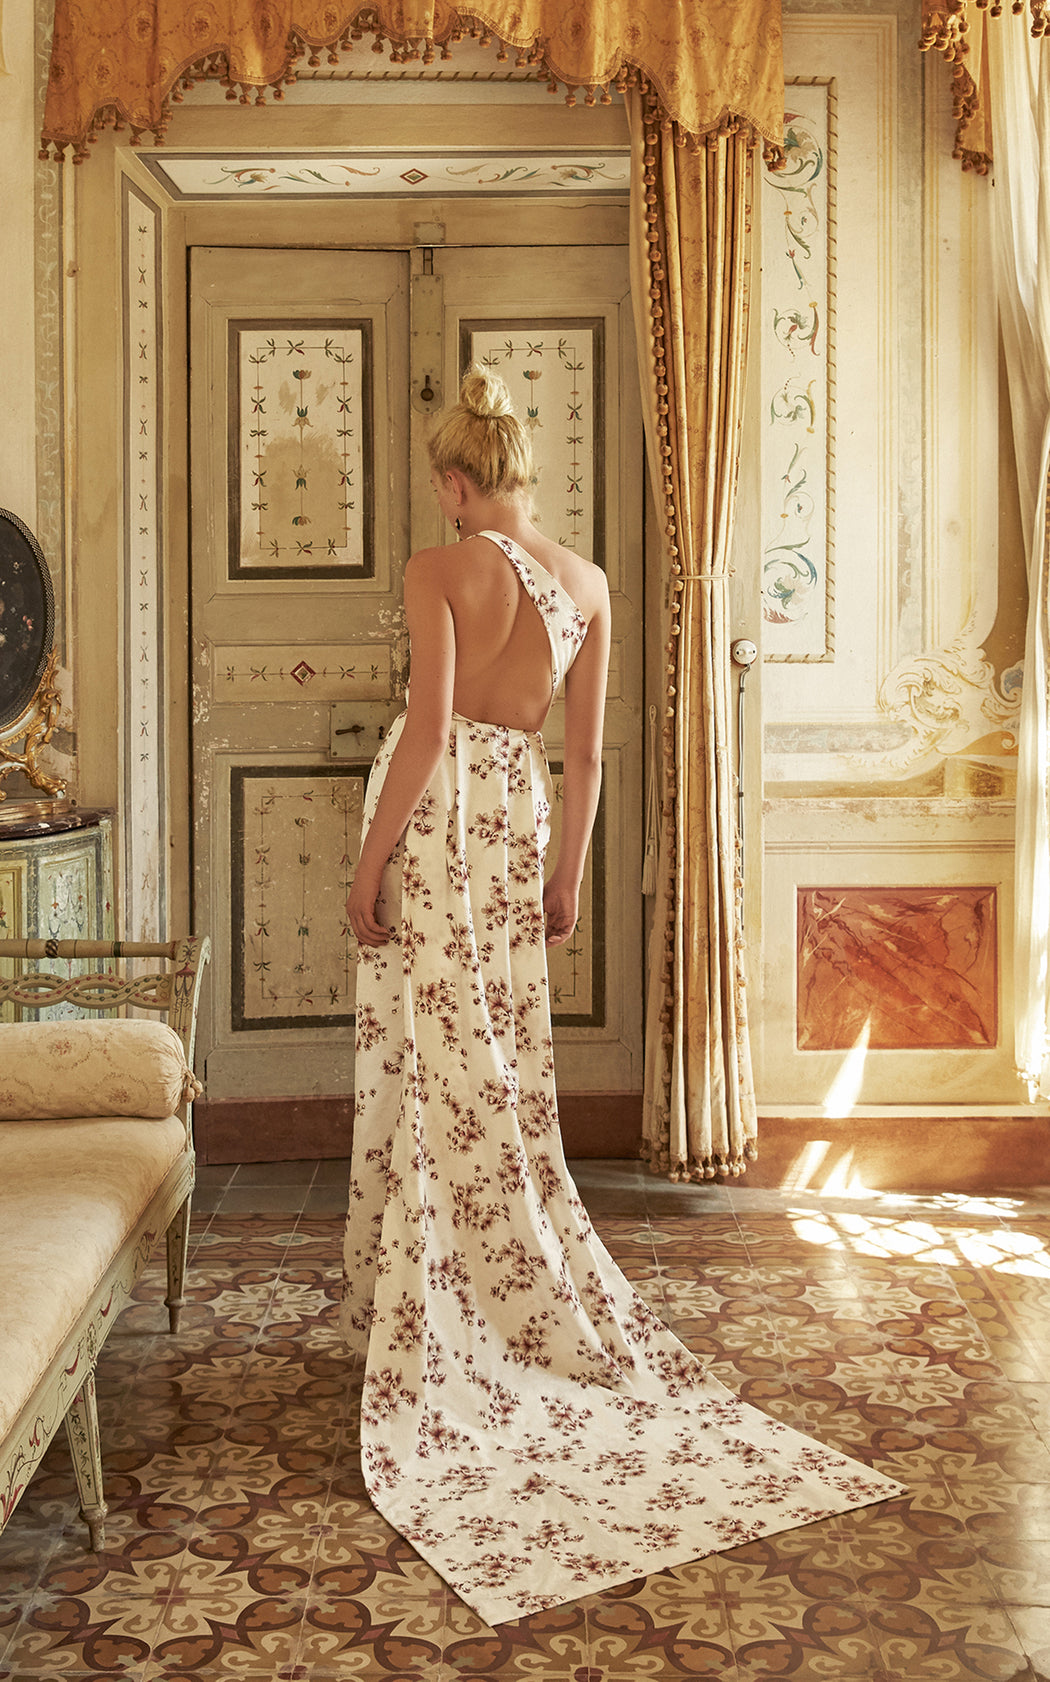 In Stock: Dido One-Shoulder Floral Brocade Gown